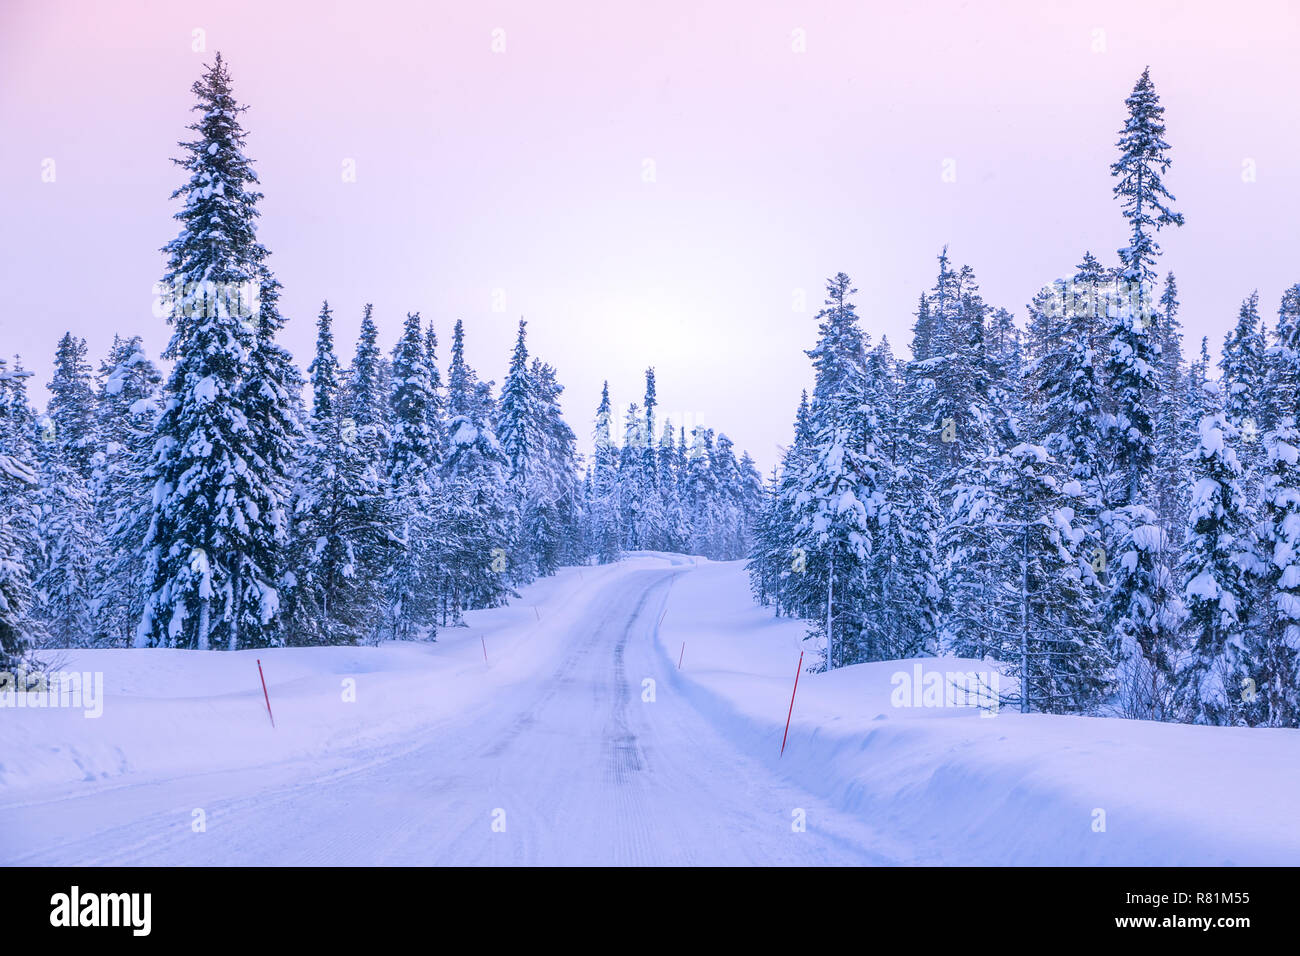 Winter road through the northern forest. Snow-covered spruces. Red landmarks marking the edges of the roadway - Stock Image